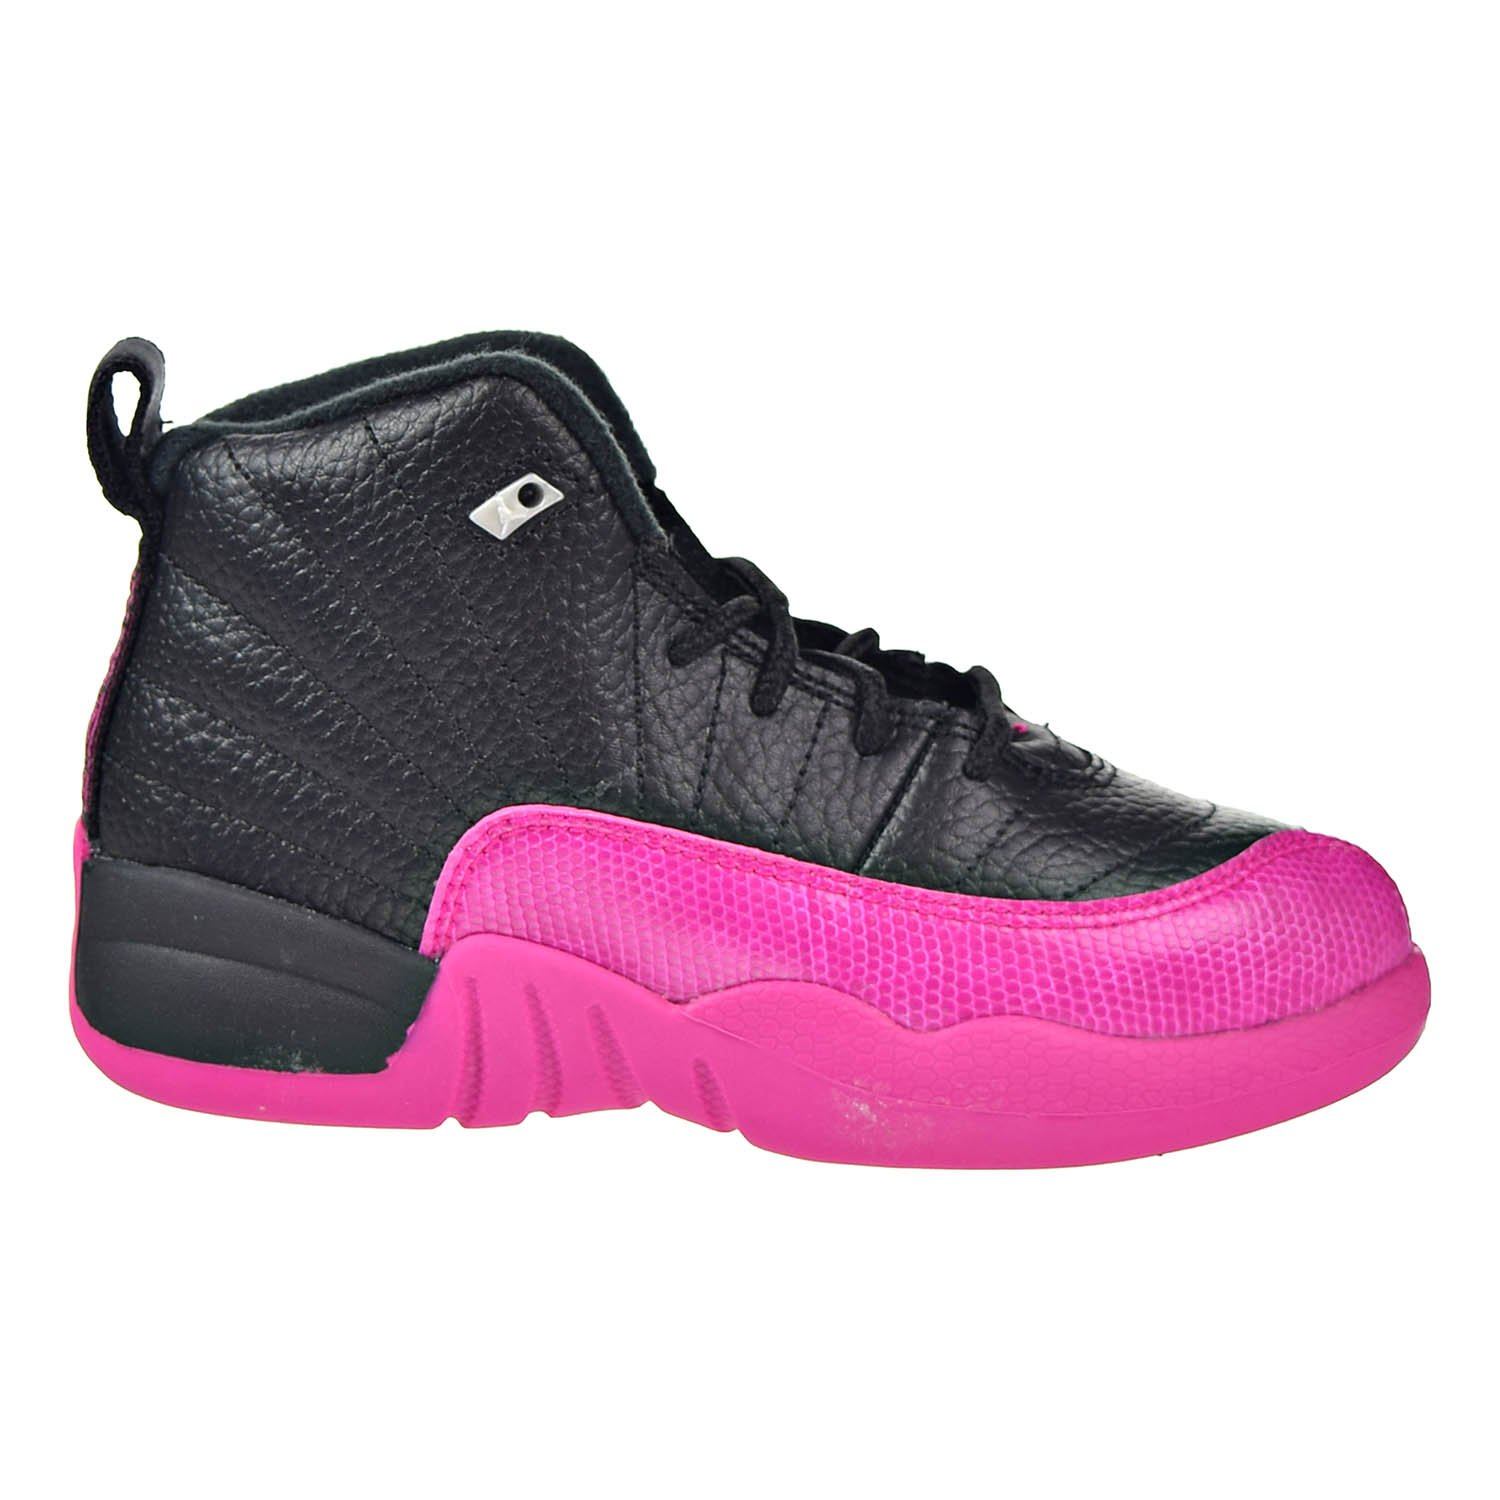 NIKE Jordan 12 Retro GP Little Kids Shoes Black/Deadly Pink 510816-026 (11.5 M US)